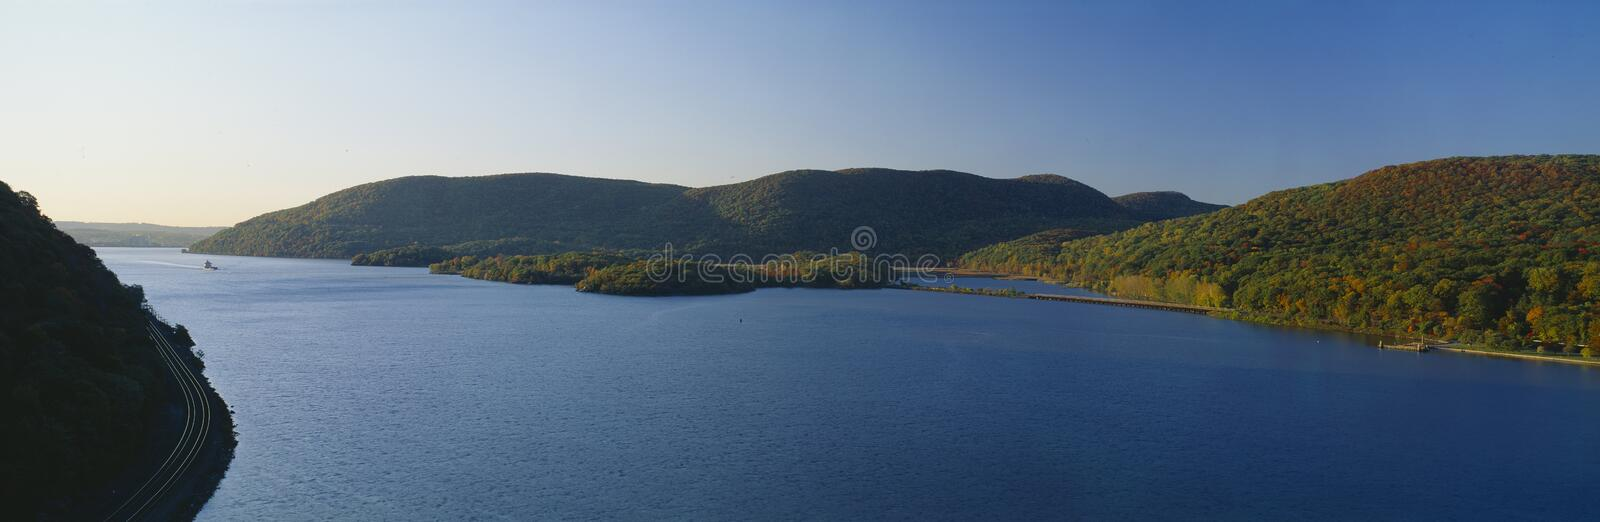 George W. Perkins Memorial Drive in Bear Mountain State Park, Hudson River Valley, New York royalty free stock image